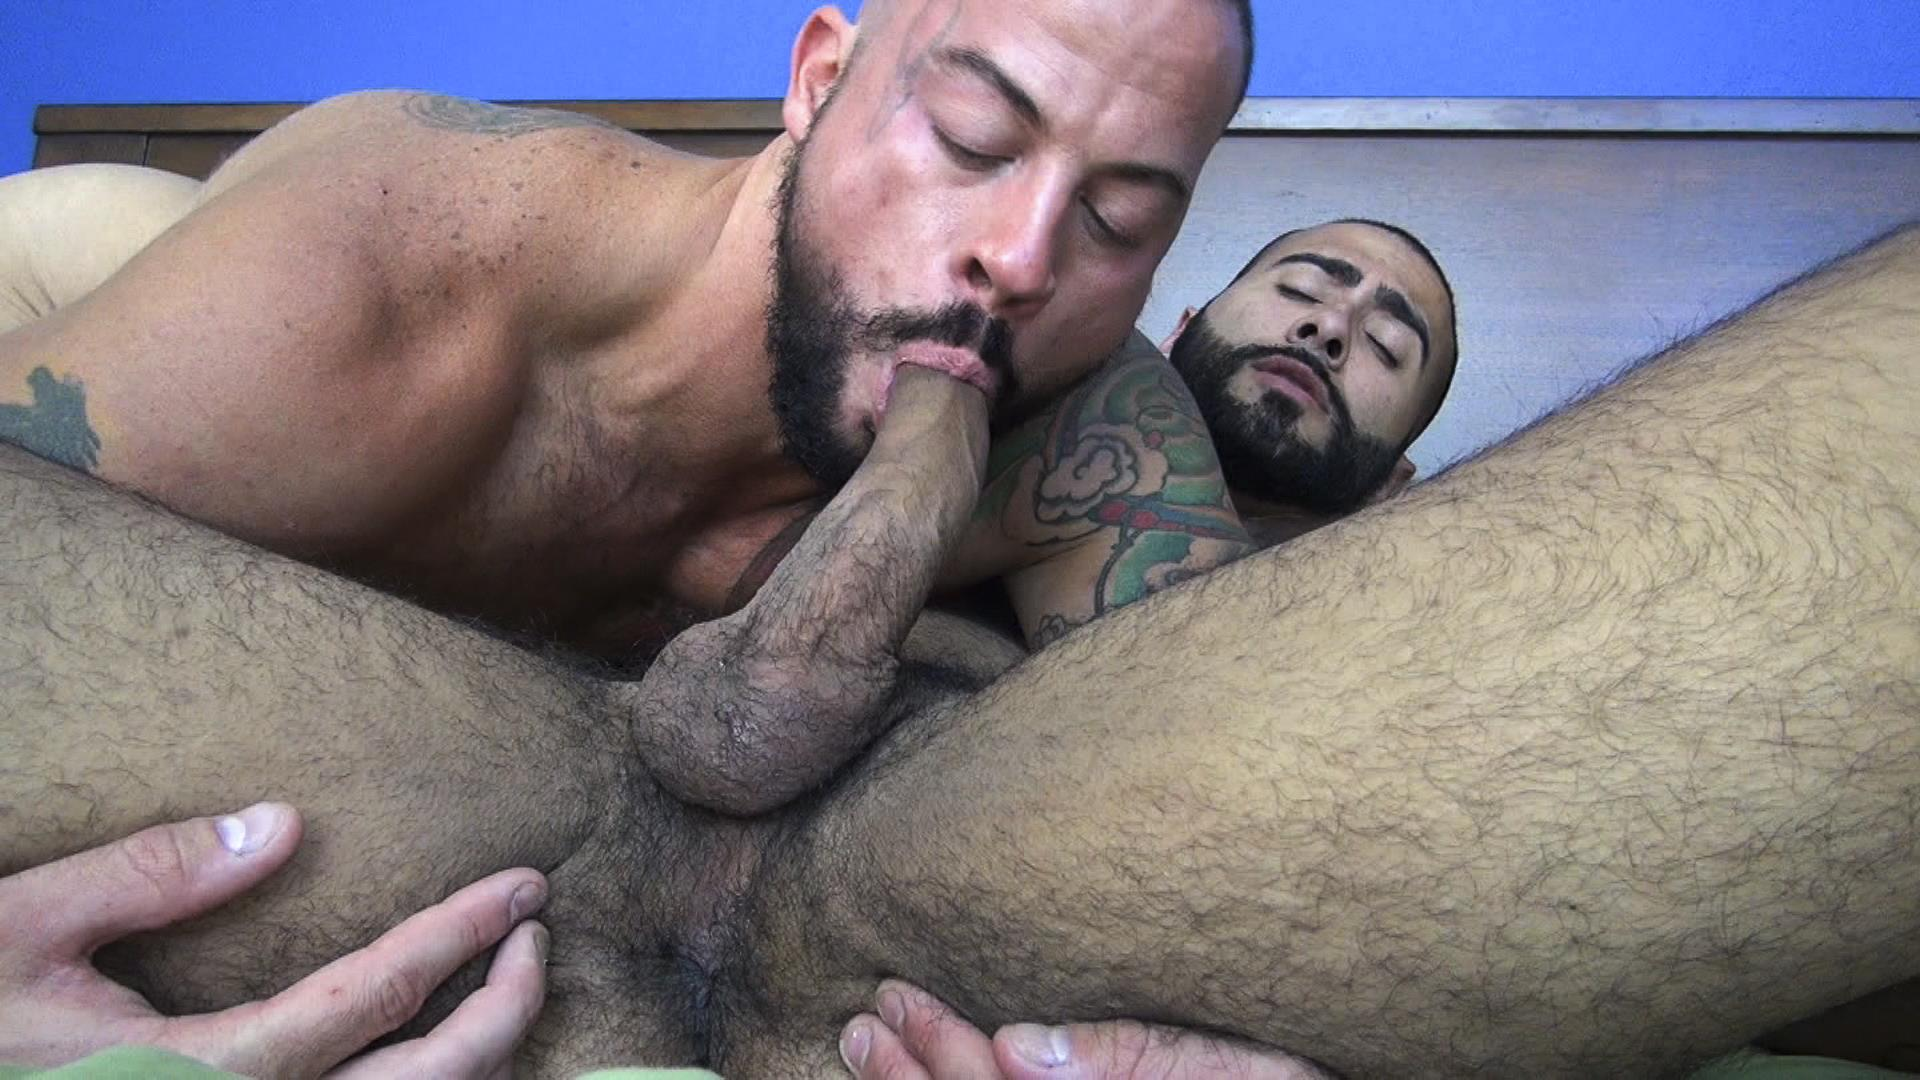 Raw-Fuck-Club-Rikk-York-and-Sean-Duran-Hairy-Muscle-Bareback-Amateur-Gay-Porn-3 Hairy Muscle Studs & Real Life Boyfriends Sean Duran & Rikk York Bareback